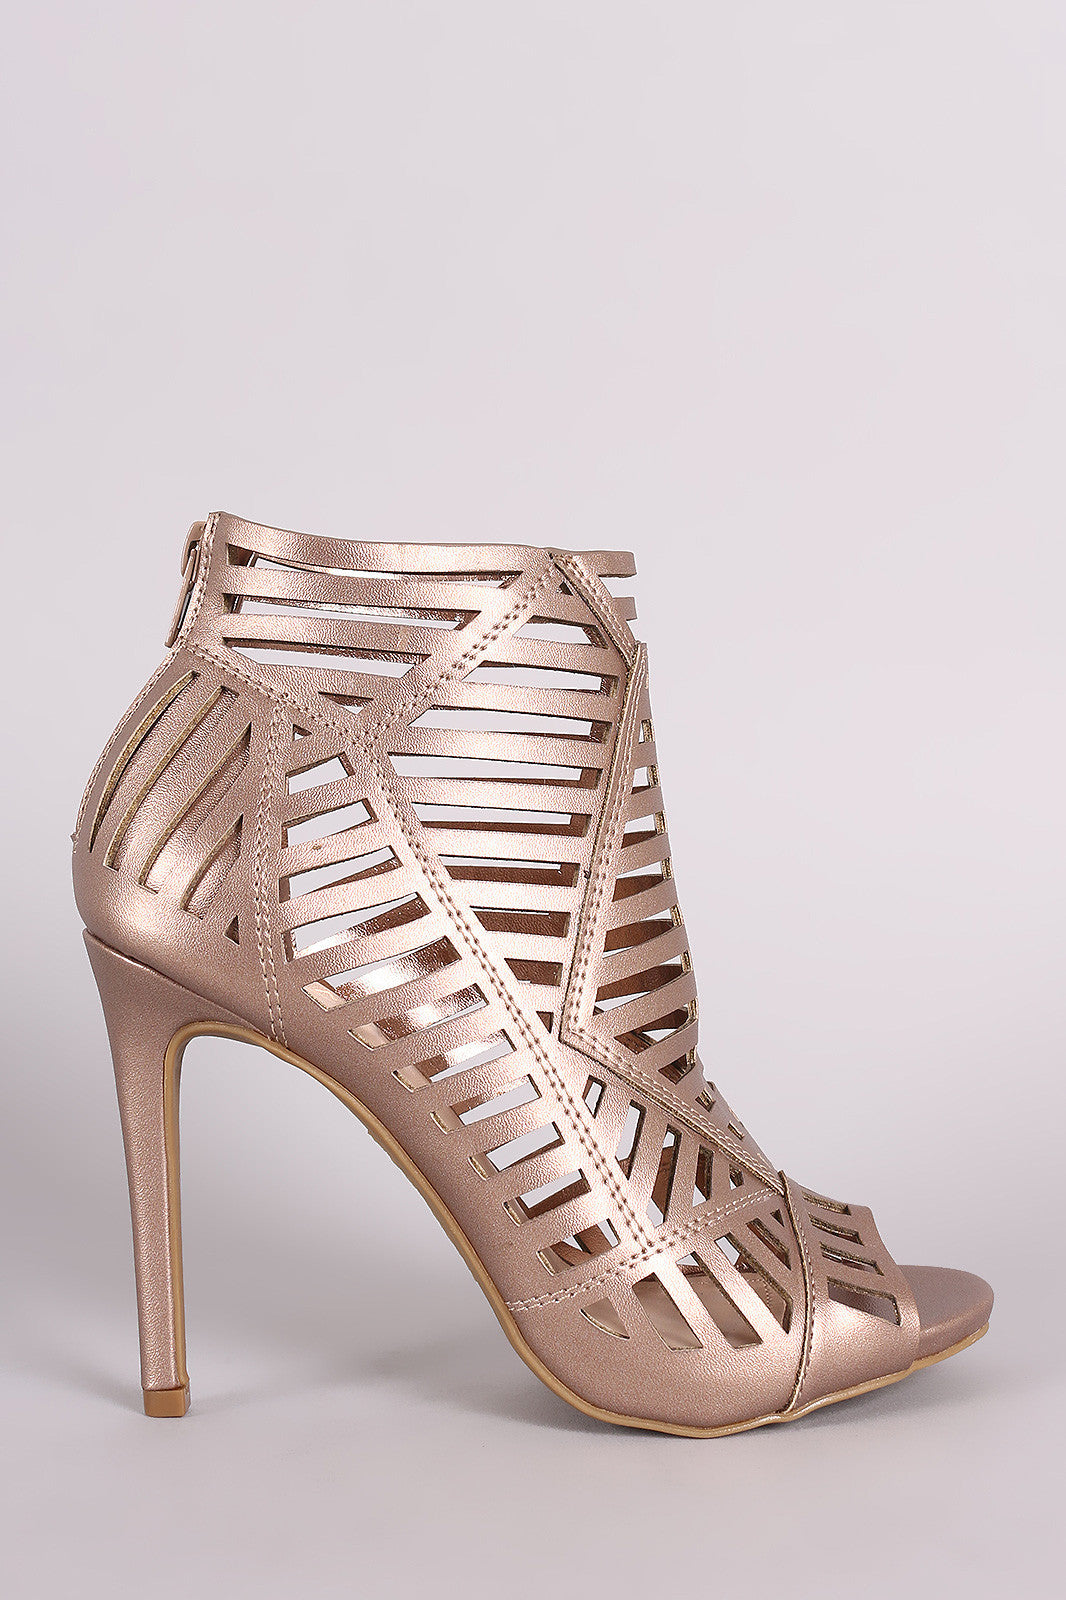 Anne Michelle Caged Peep Toe Stiletto Heel - Thick 'N' Curvy Shop - 2